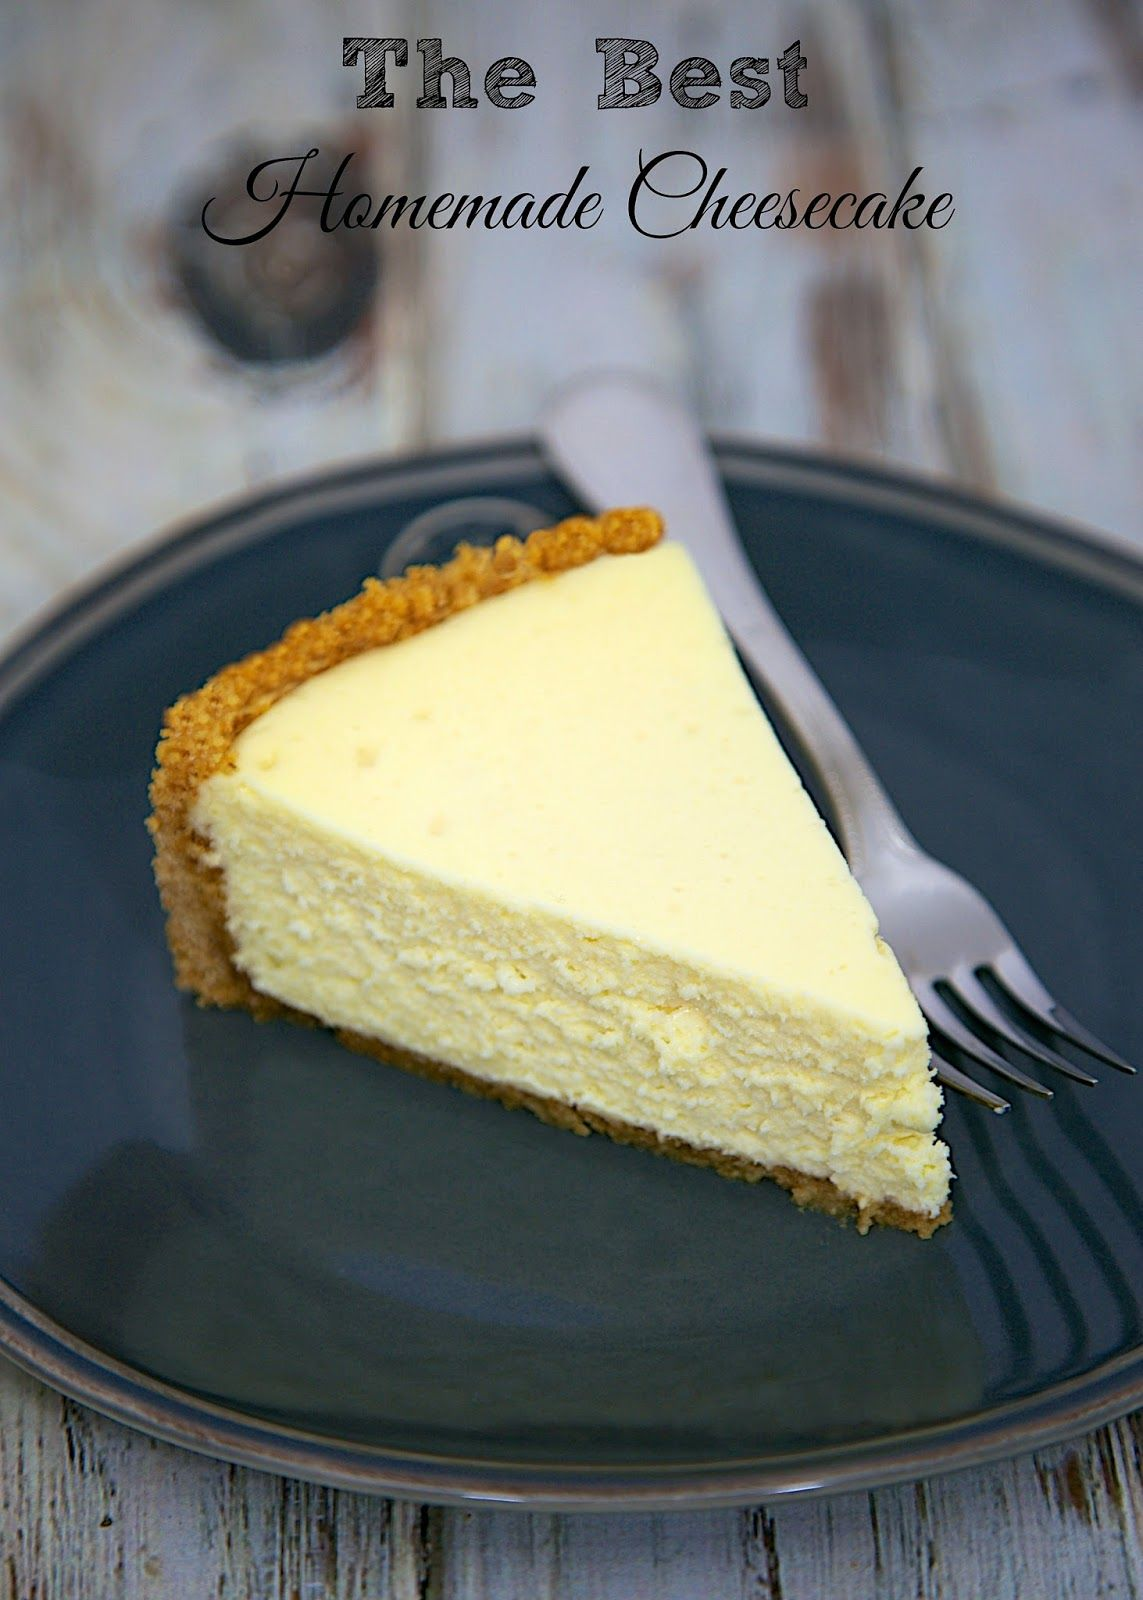 Check Out The Best Homemade Cheesecake It S So Easy To Make Homemade Cheesecake Fluffy Cheesecake And Cheesecakes